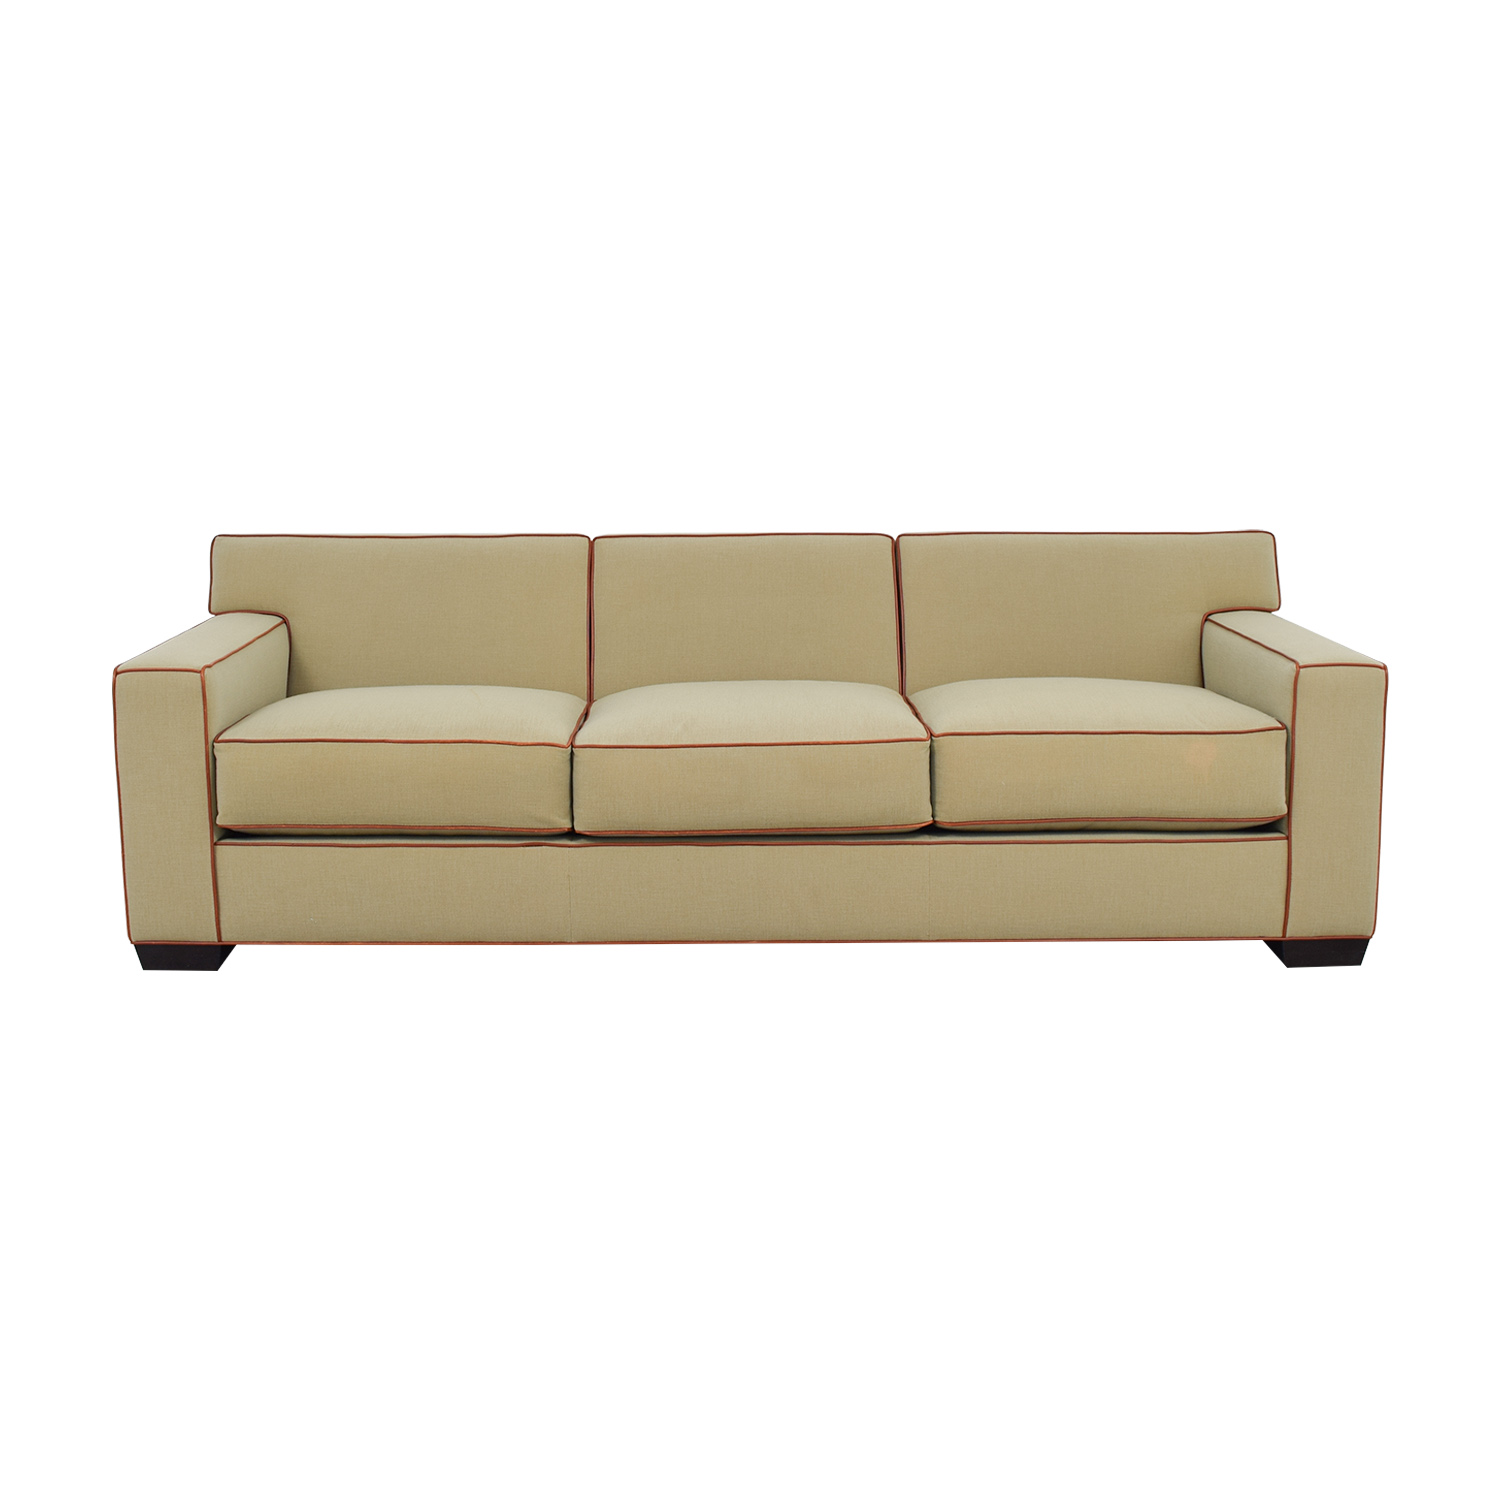 Mattaliano Mattaliano Beige with Cognac Leather Trimmed Three-Cushion Sofa nj